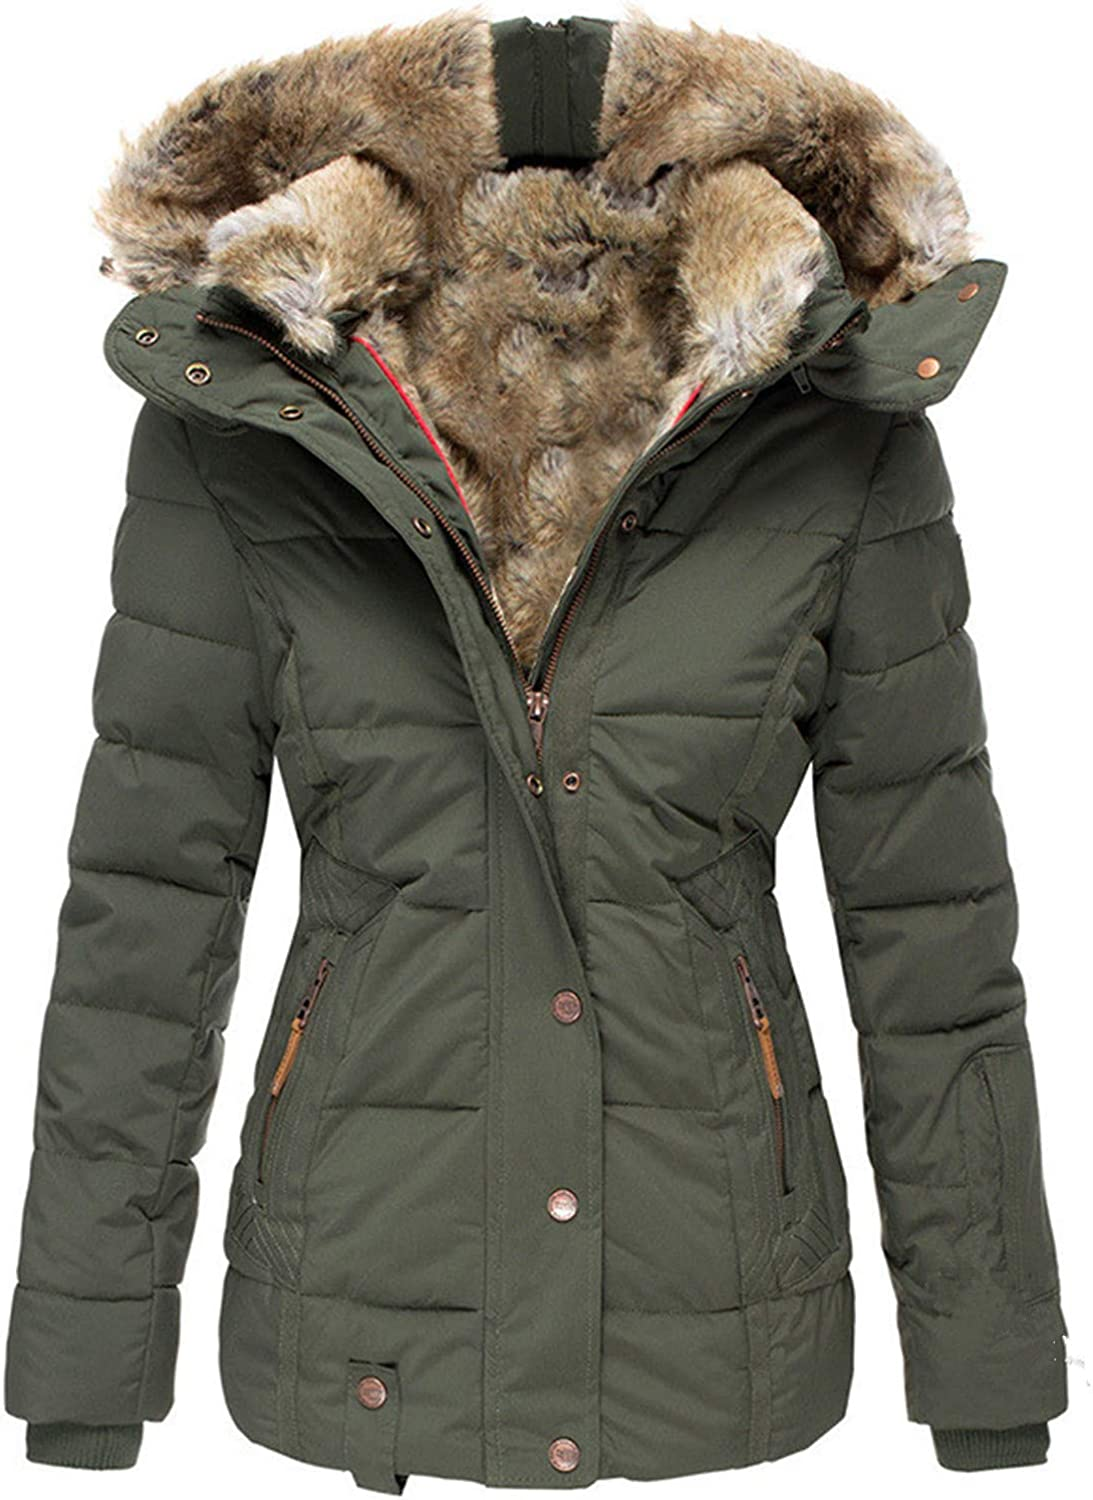 LY-VV Womens Plus Size Thicken Fleece Lined Parka Warm Faux Fur Quilted Jacket